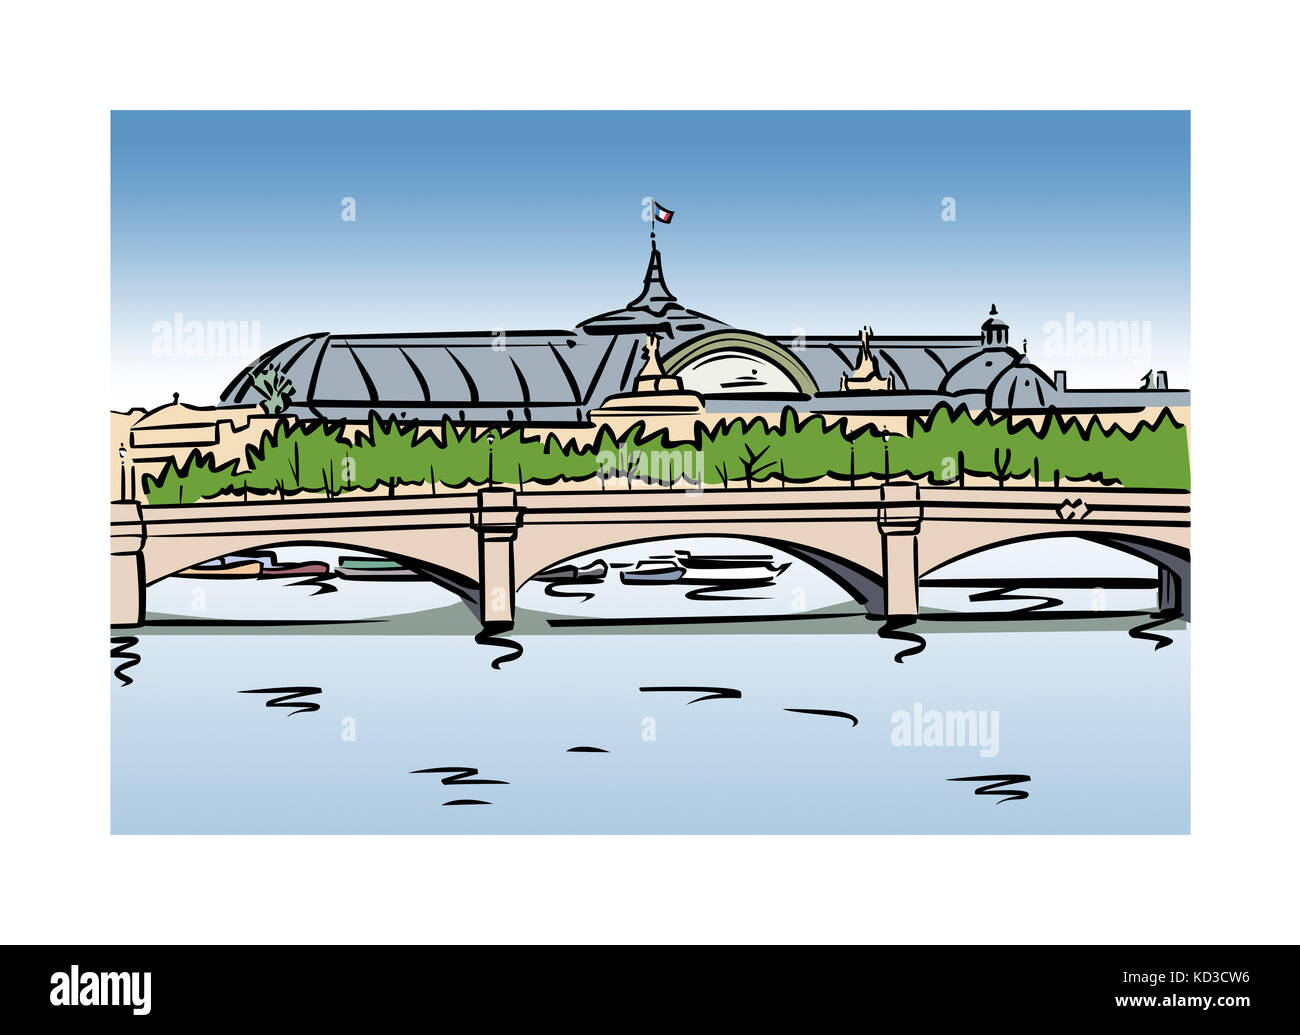 Illustration of the Grand Palais in Paris, France - Stock Image